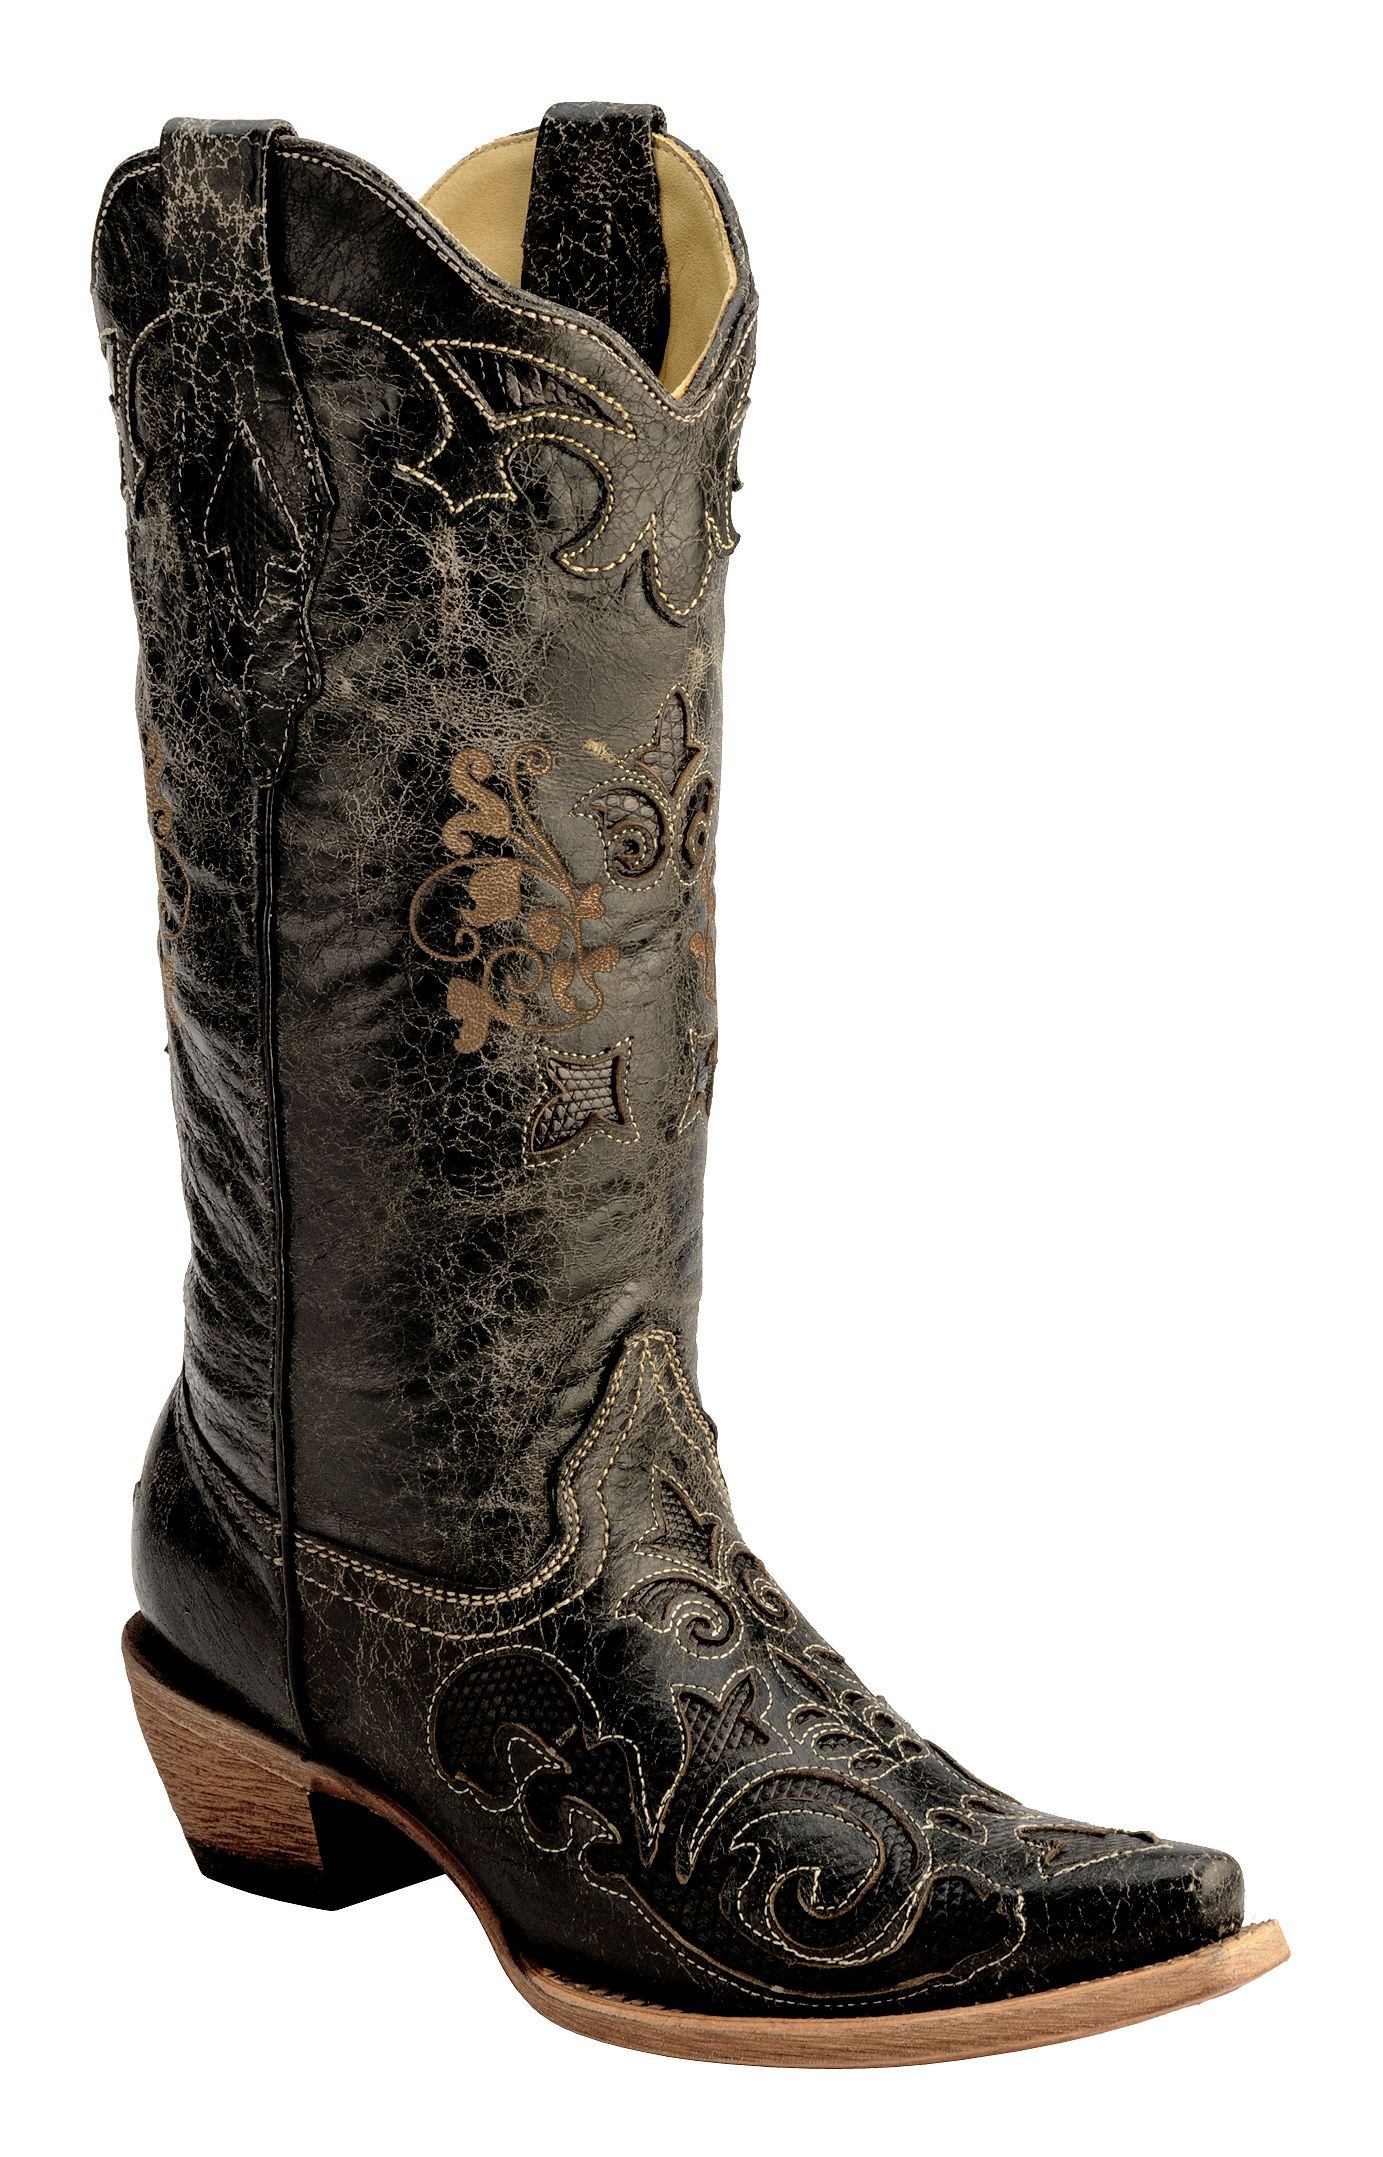 Corral Vintage Distressed Black With Lizard Inlay Cowgirl